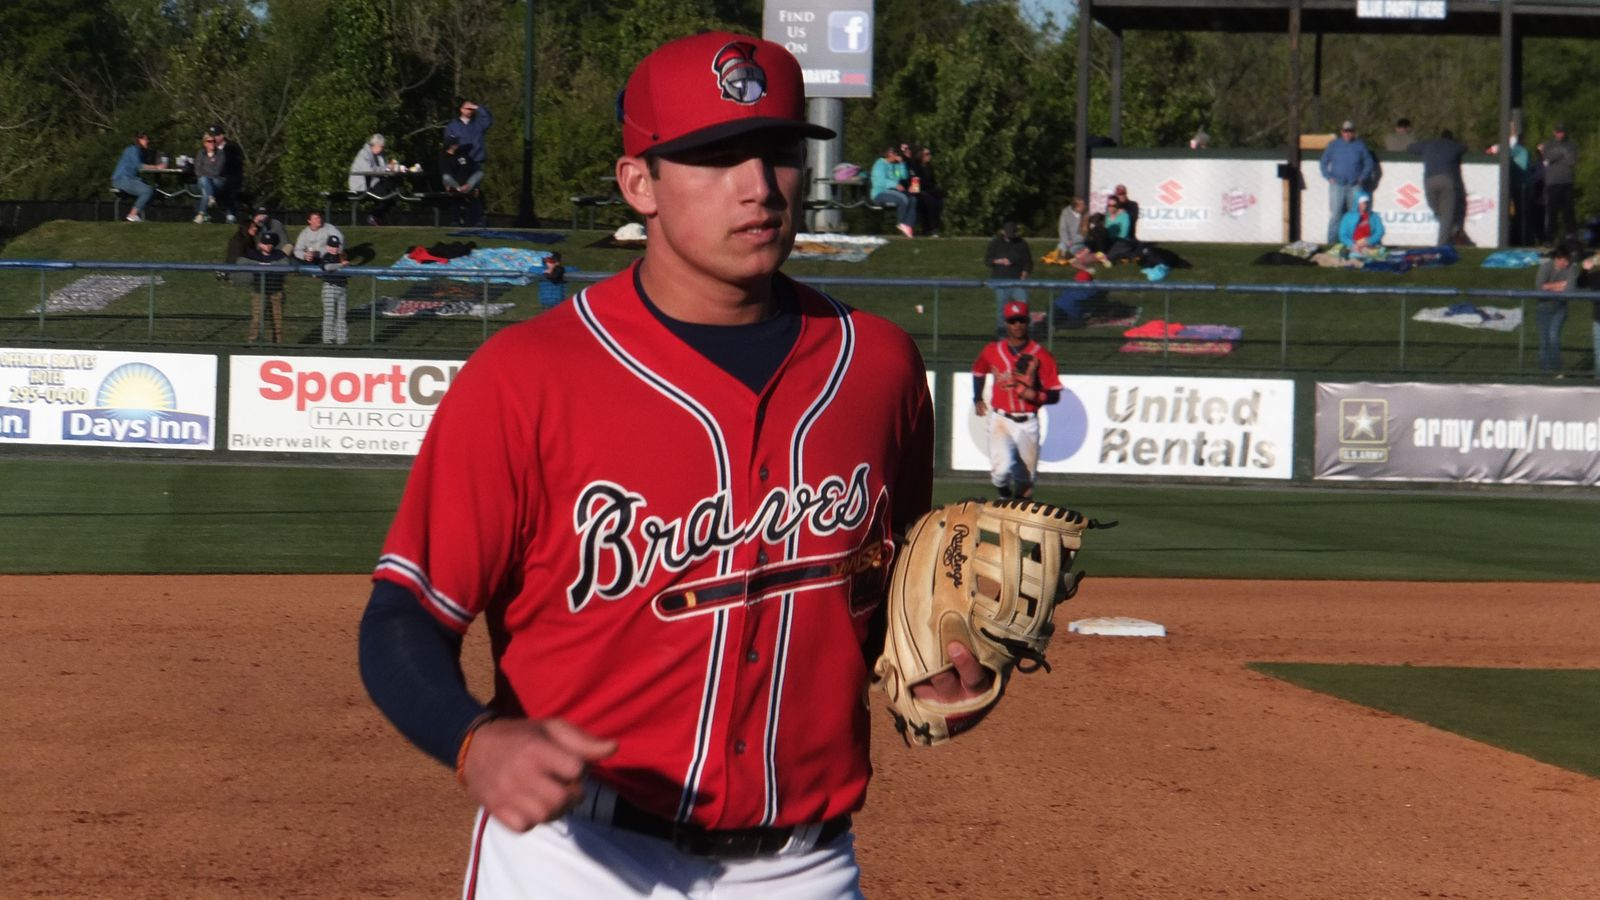 Interviewing Baseball America's Hudson Belinsky about Braves prospects - Part One - Talking Chop